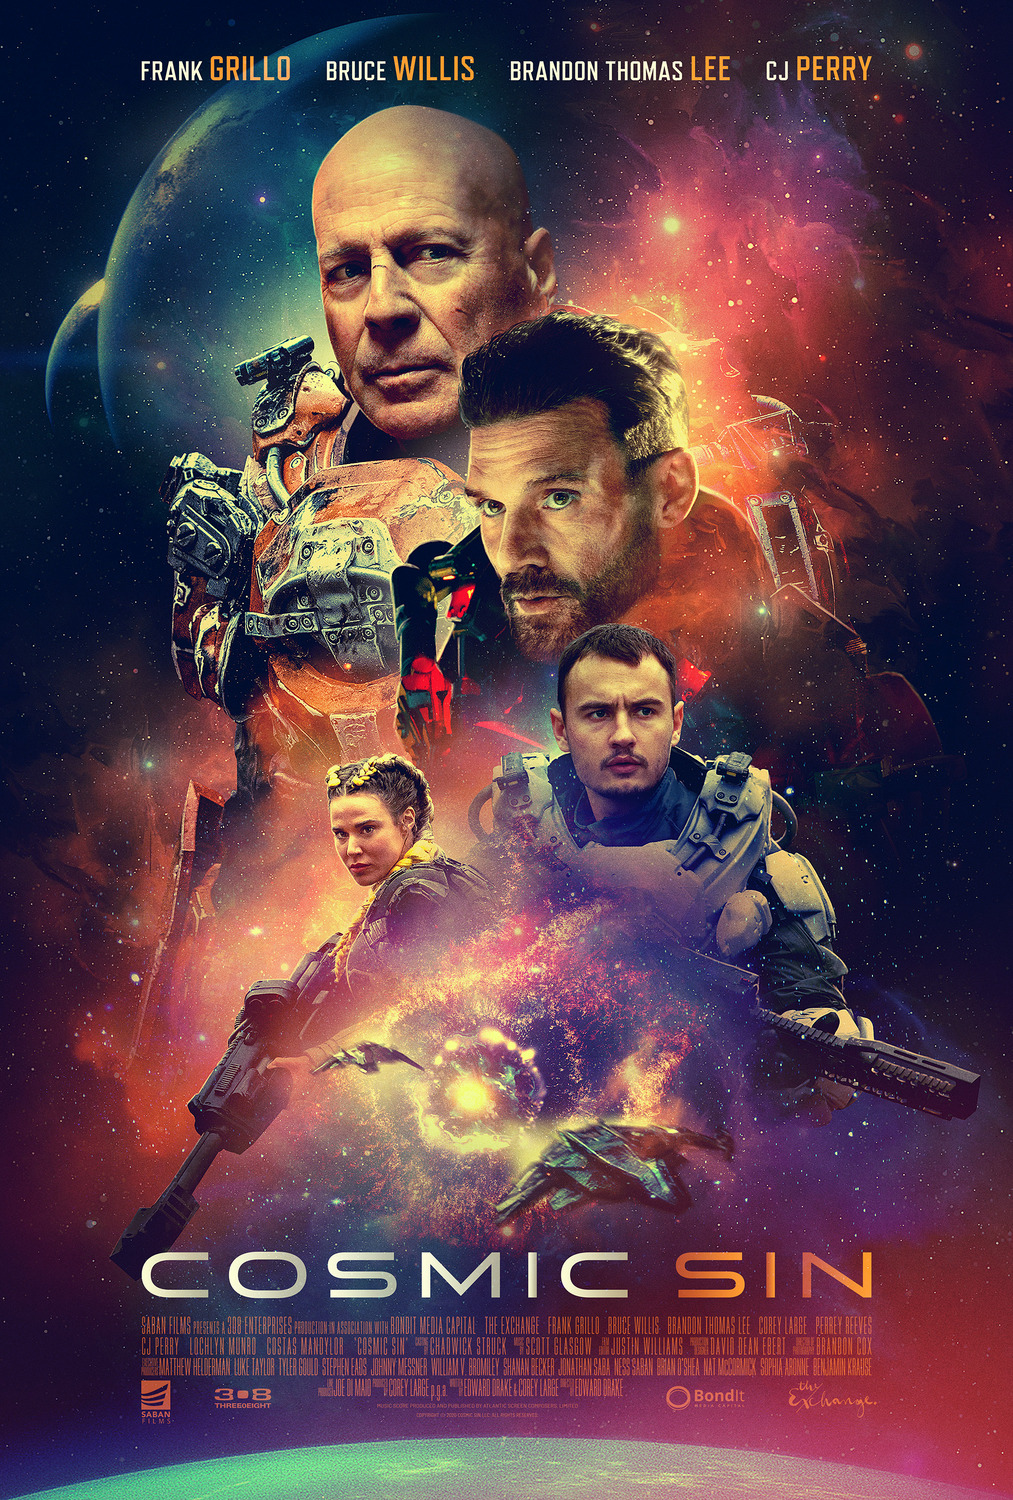 Cosmic Sin - Watch Bruce Willis and Frank Grillo in the ...